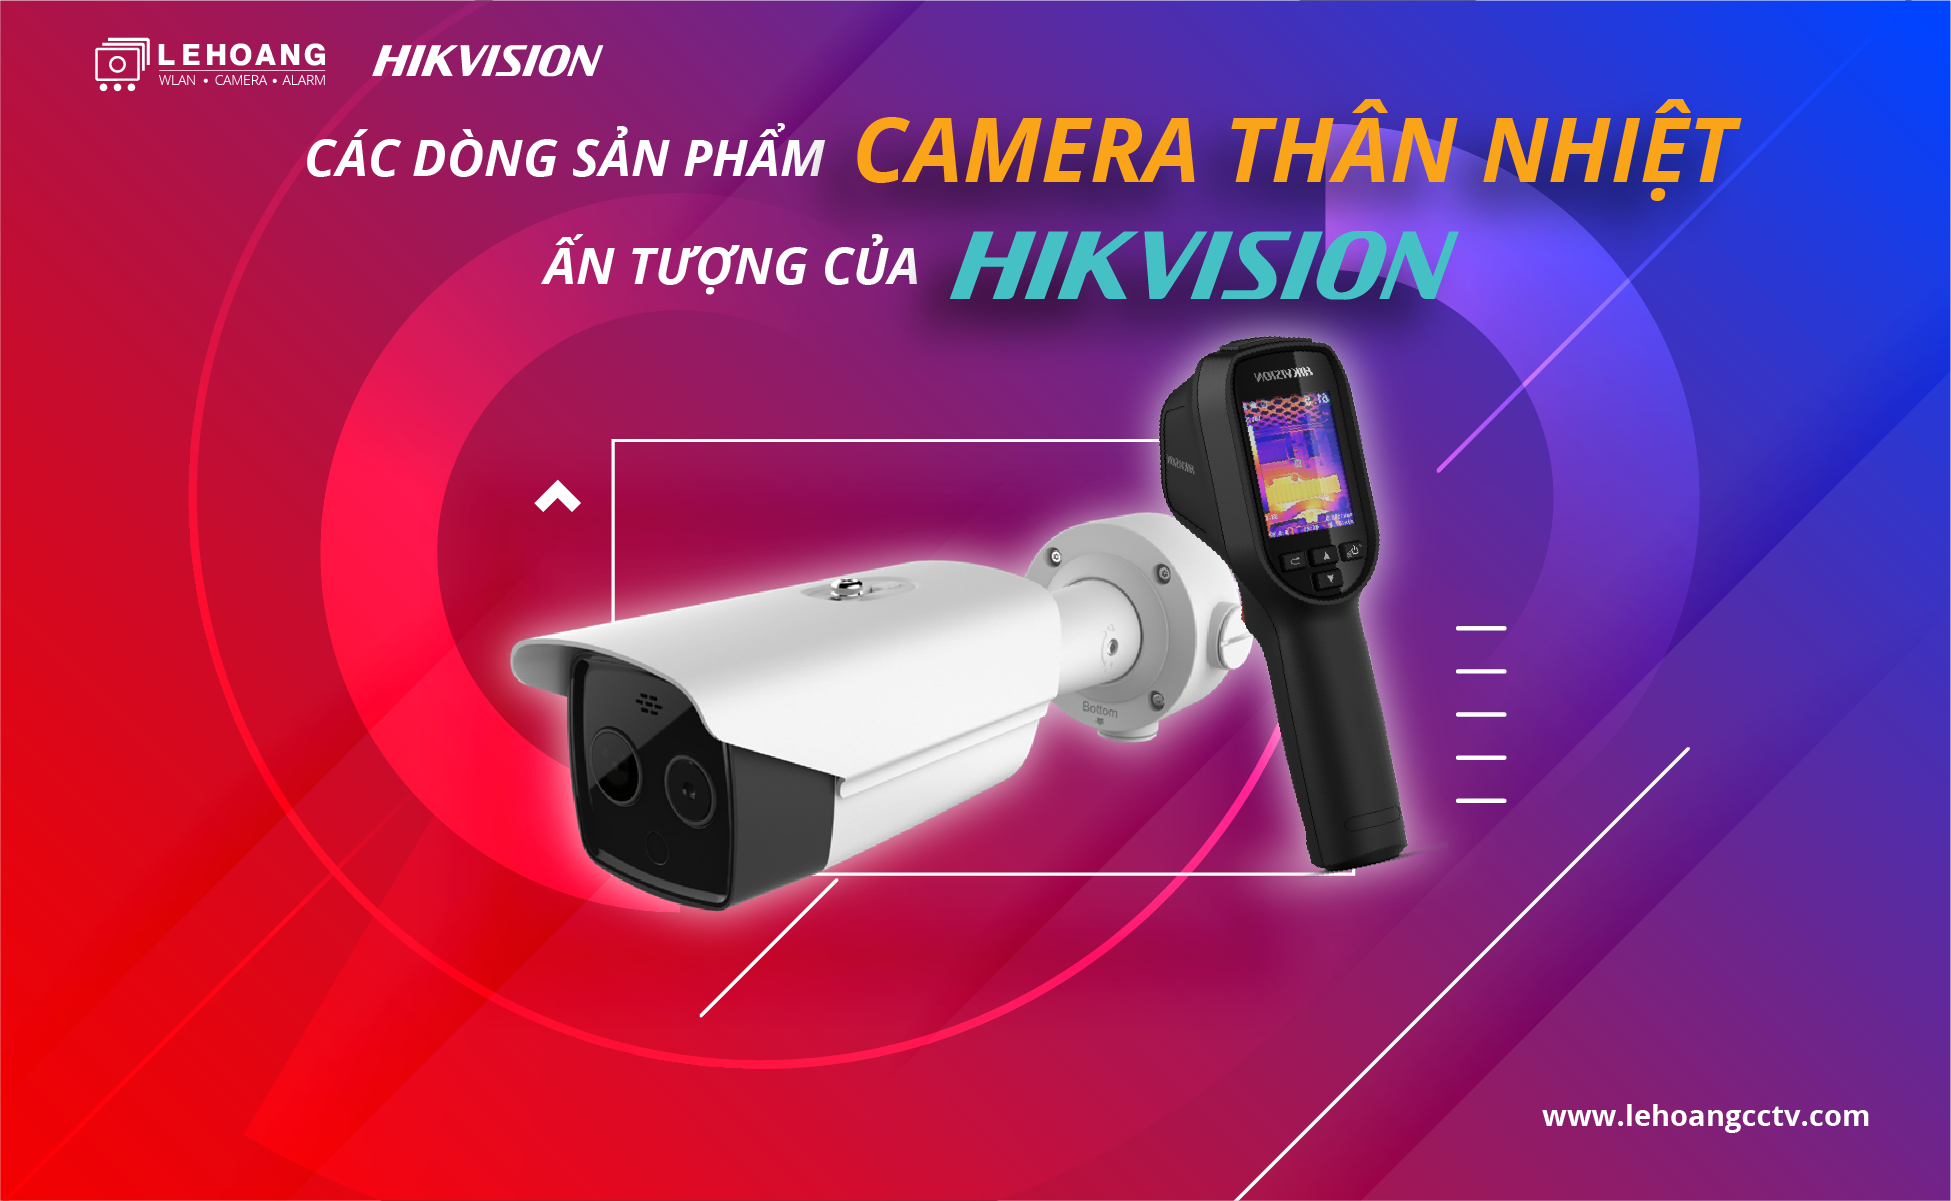 Camera-than-nhiet-hikvision